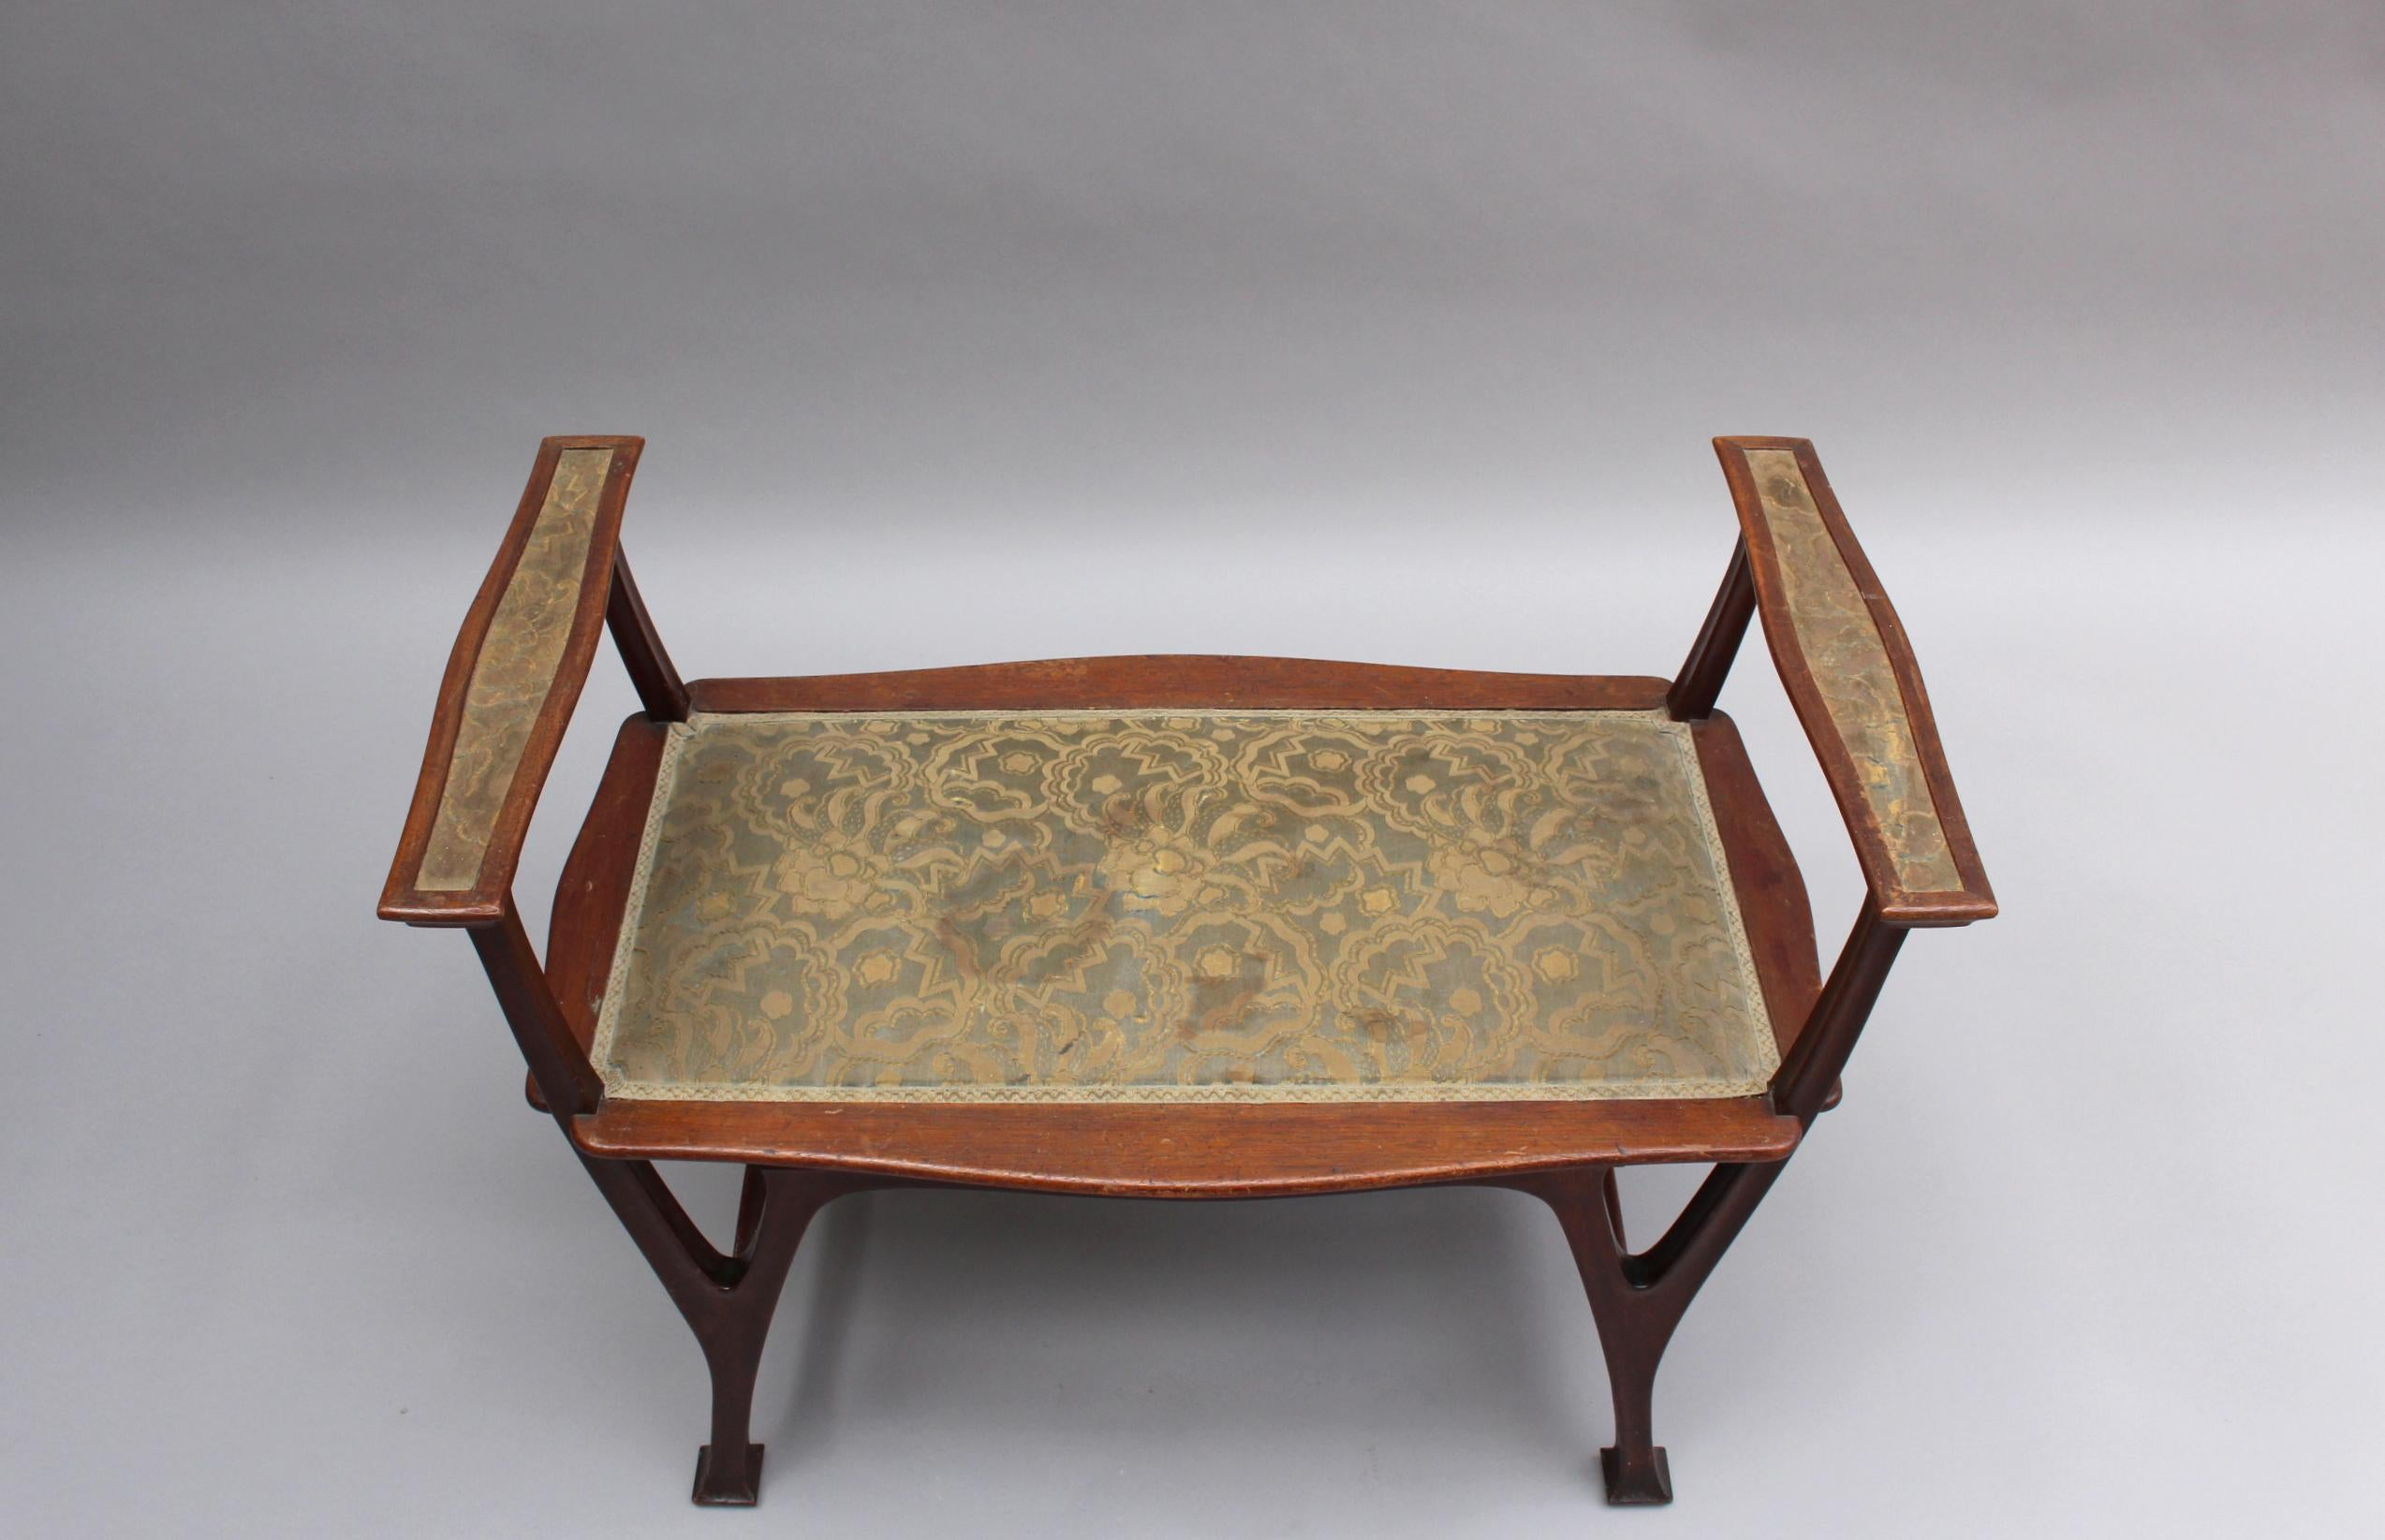 Fine French Art Nouveau Upholstered Mahogany Bench For Sale 2